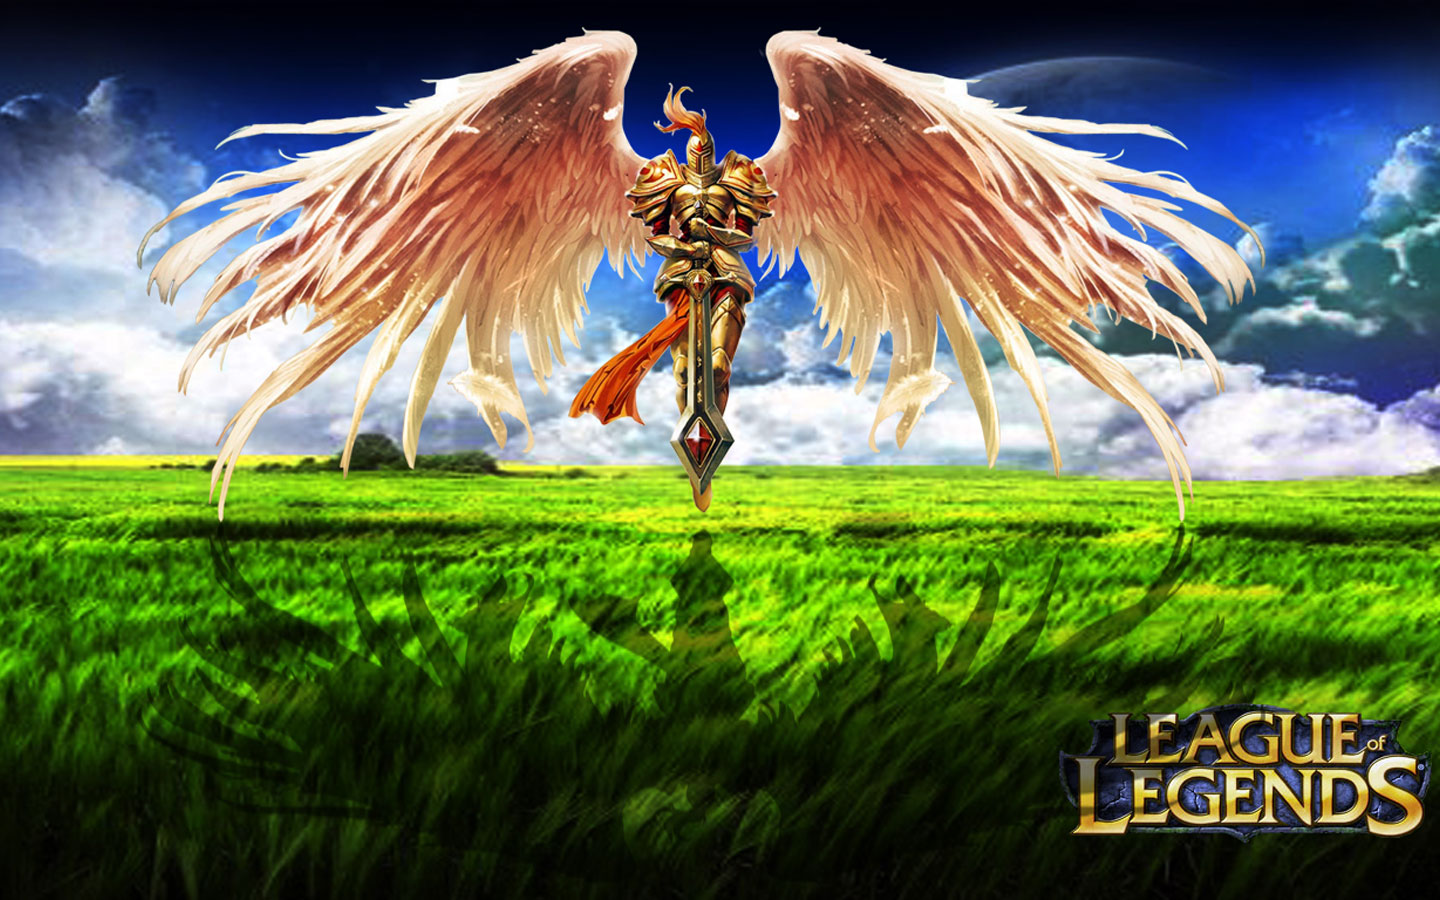 http://2.bp.blogspot.com/-LtmQwSamqNE/Tgc7DCnuYmI/AAAAAAAAAcM/wnNe1WaKDiU/s1600/kayle_league_of_legends_wallpaper_moguinho.jpg